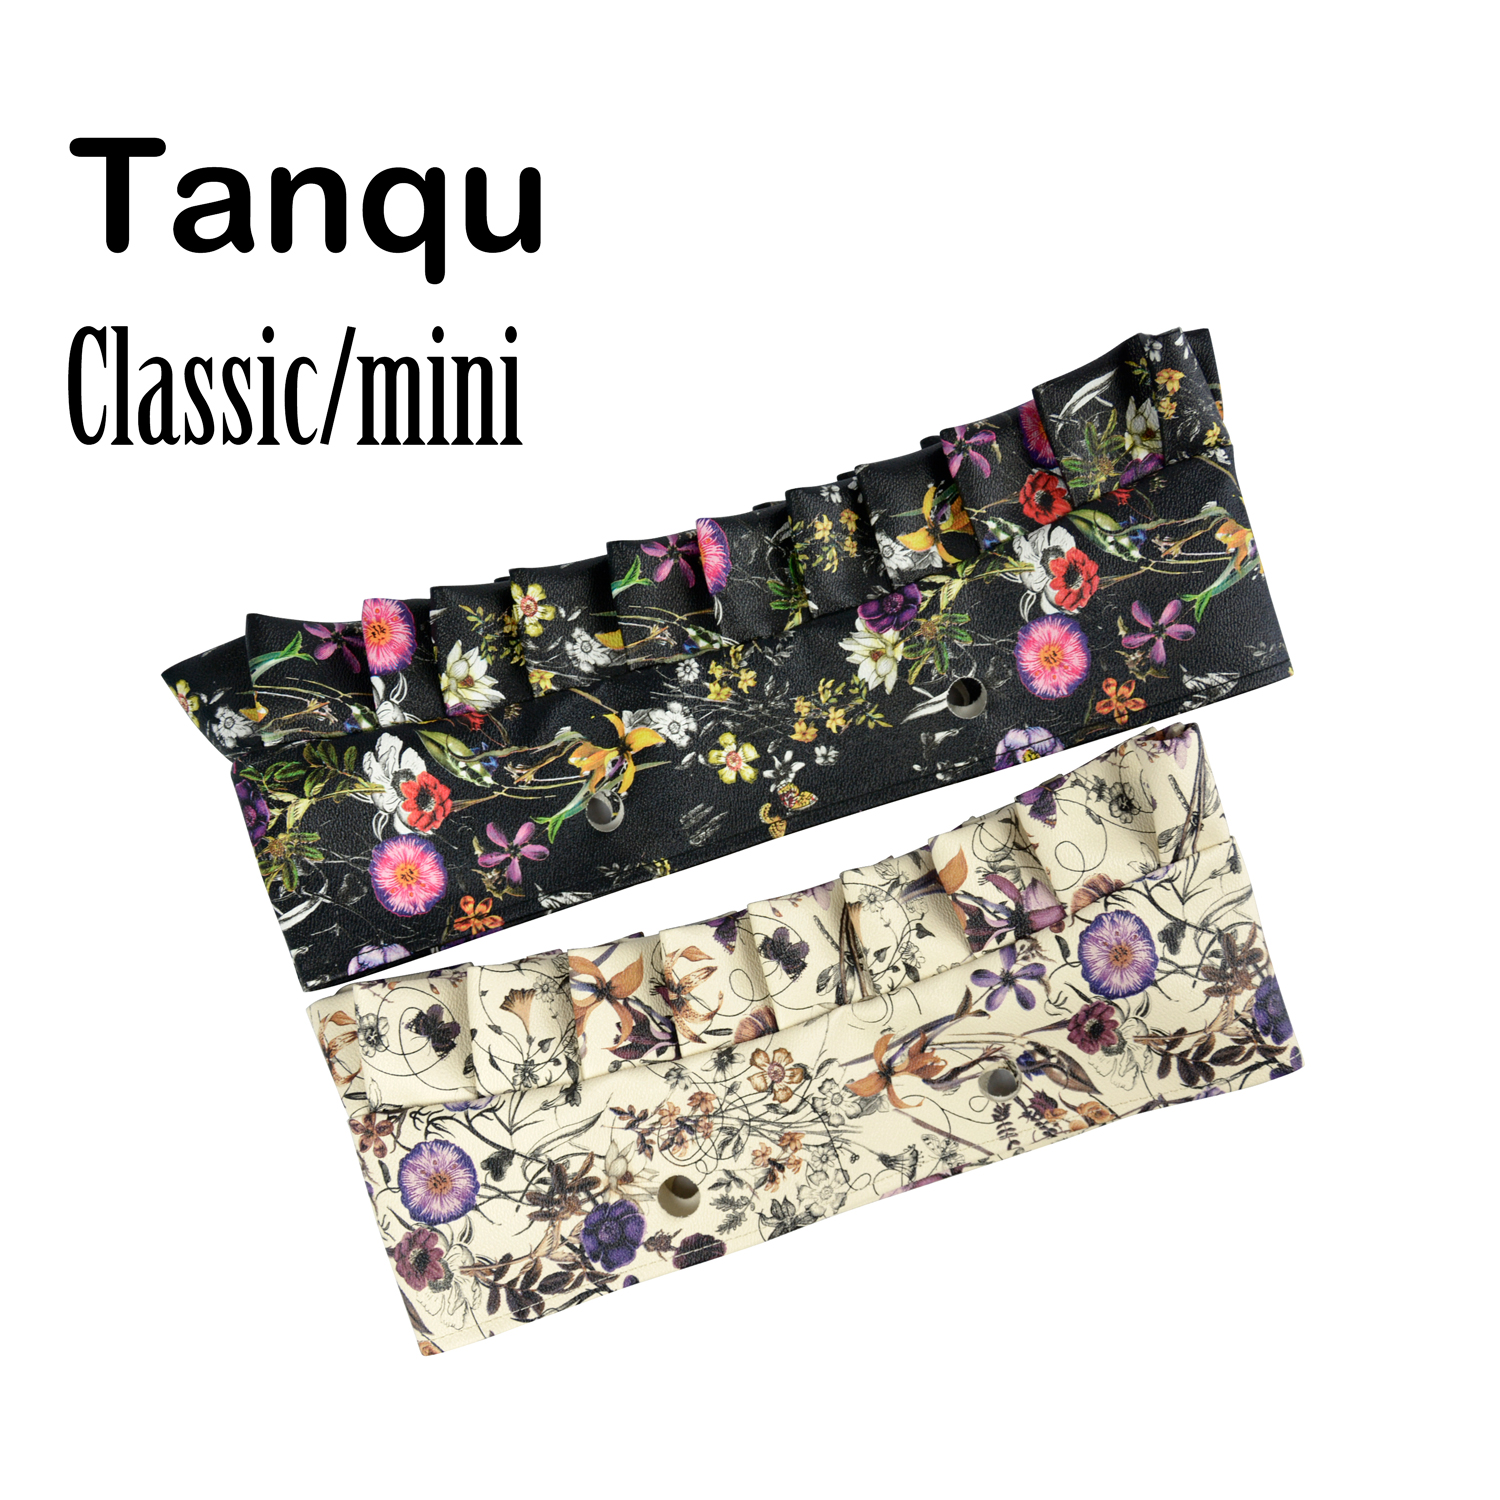 Tanqu Classic Mini Flounce Floral Leather PU Trim decoration with frill pleat for Obag O Bag Accessory self tie waist frill trim pleated pants